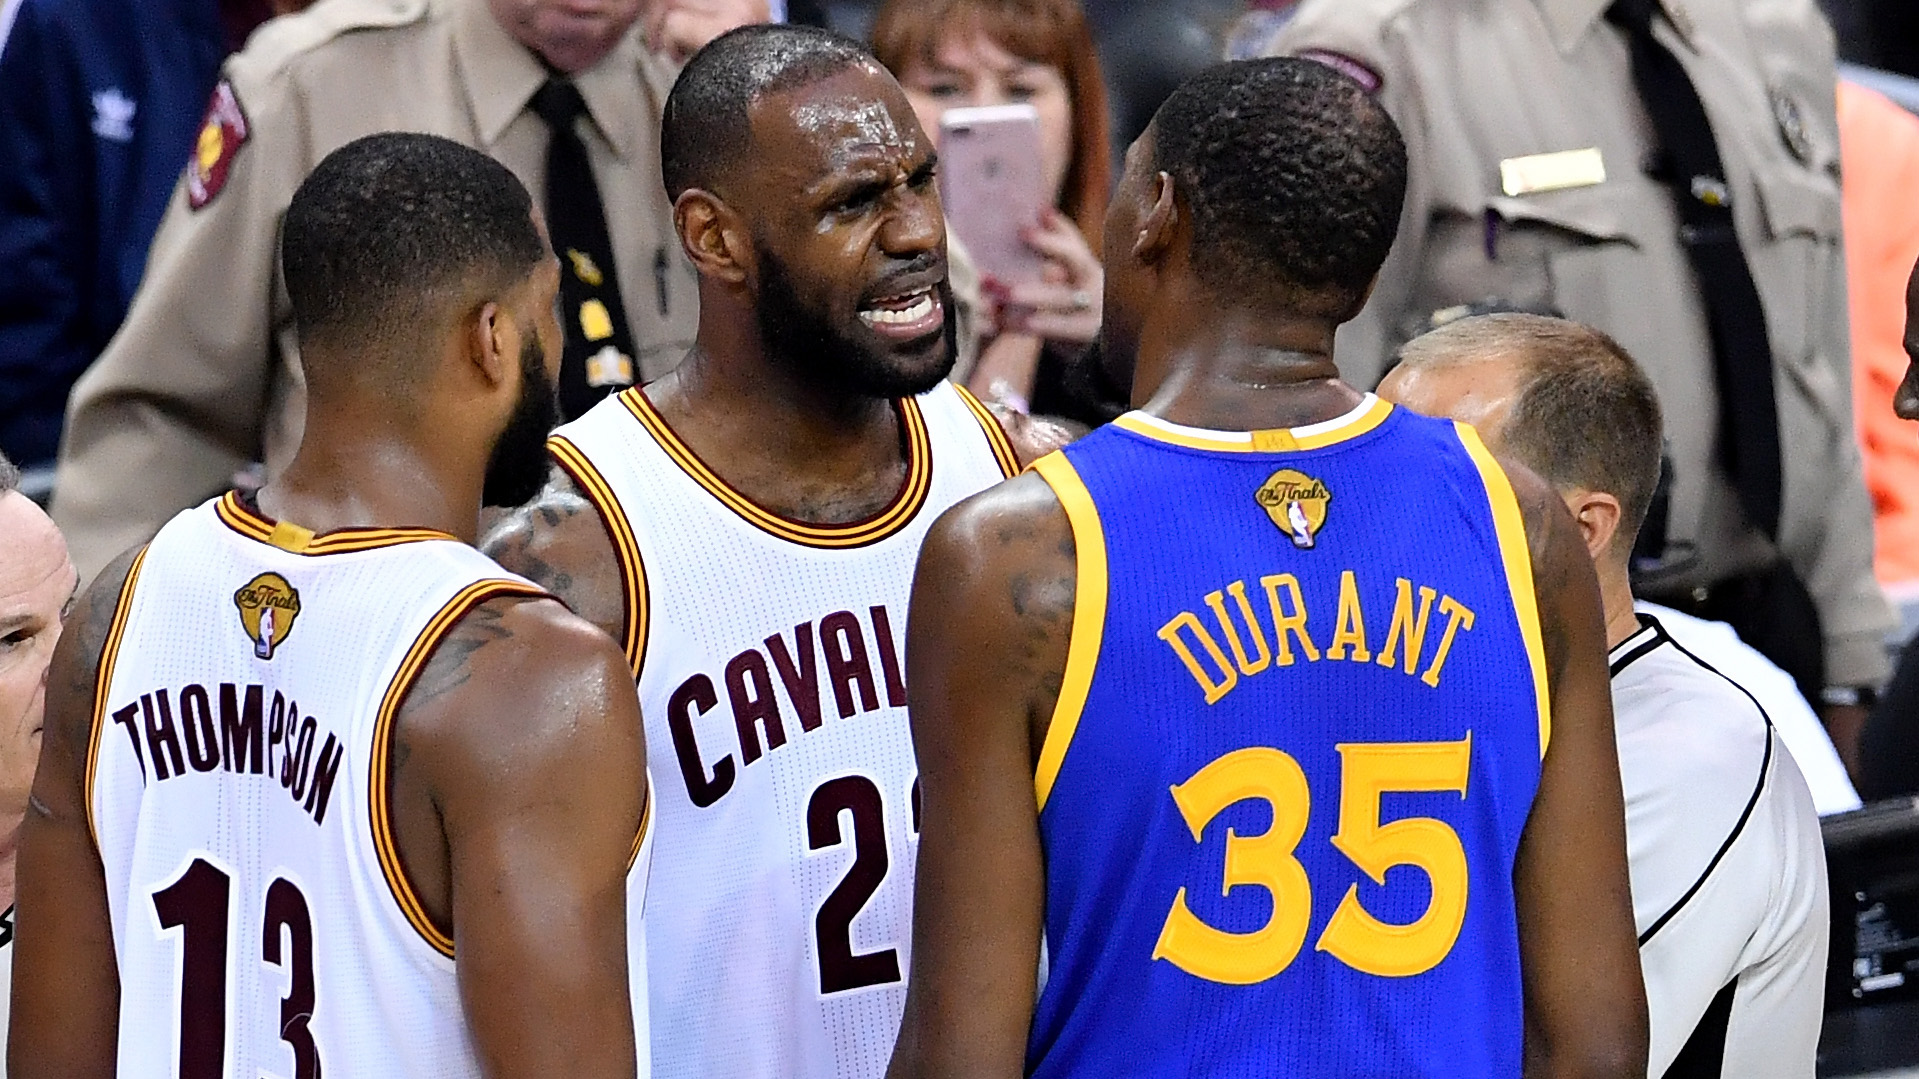 Nba Finals Tonight What Channel | All Basketball Scores Info